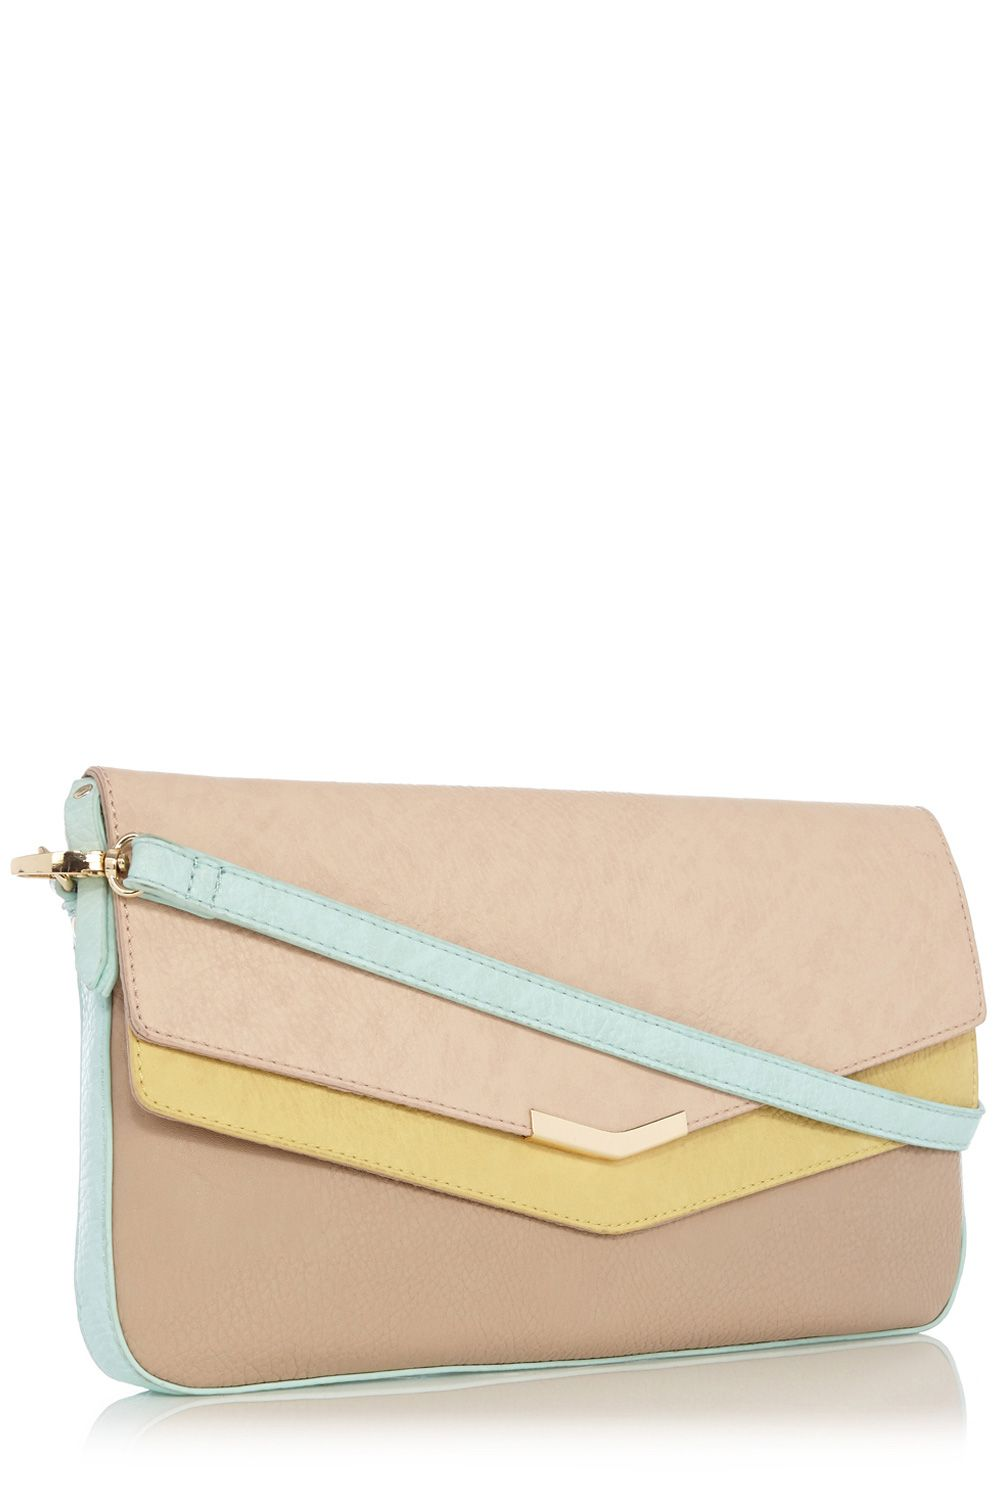 Sassy double flap clutch bag